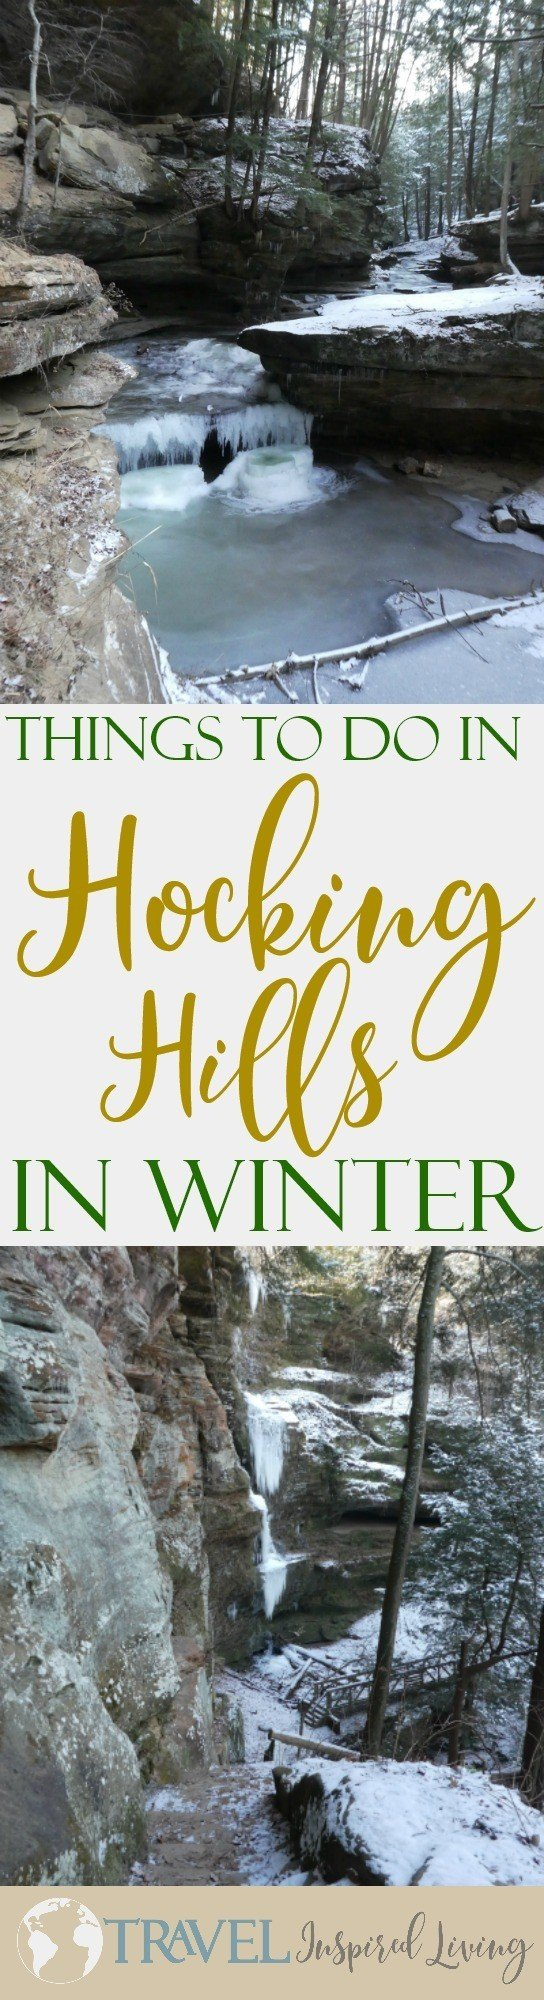 Today I'm sharing things to do in Hocking Hills during the winter from festivals, to winter hiking tips and more.